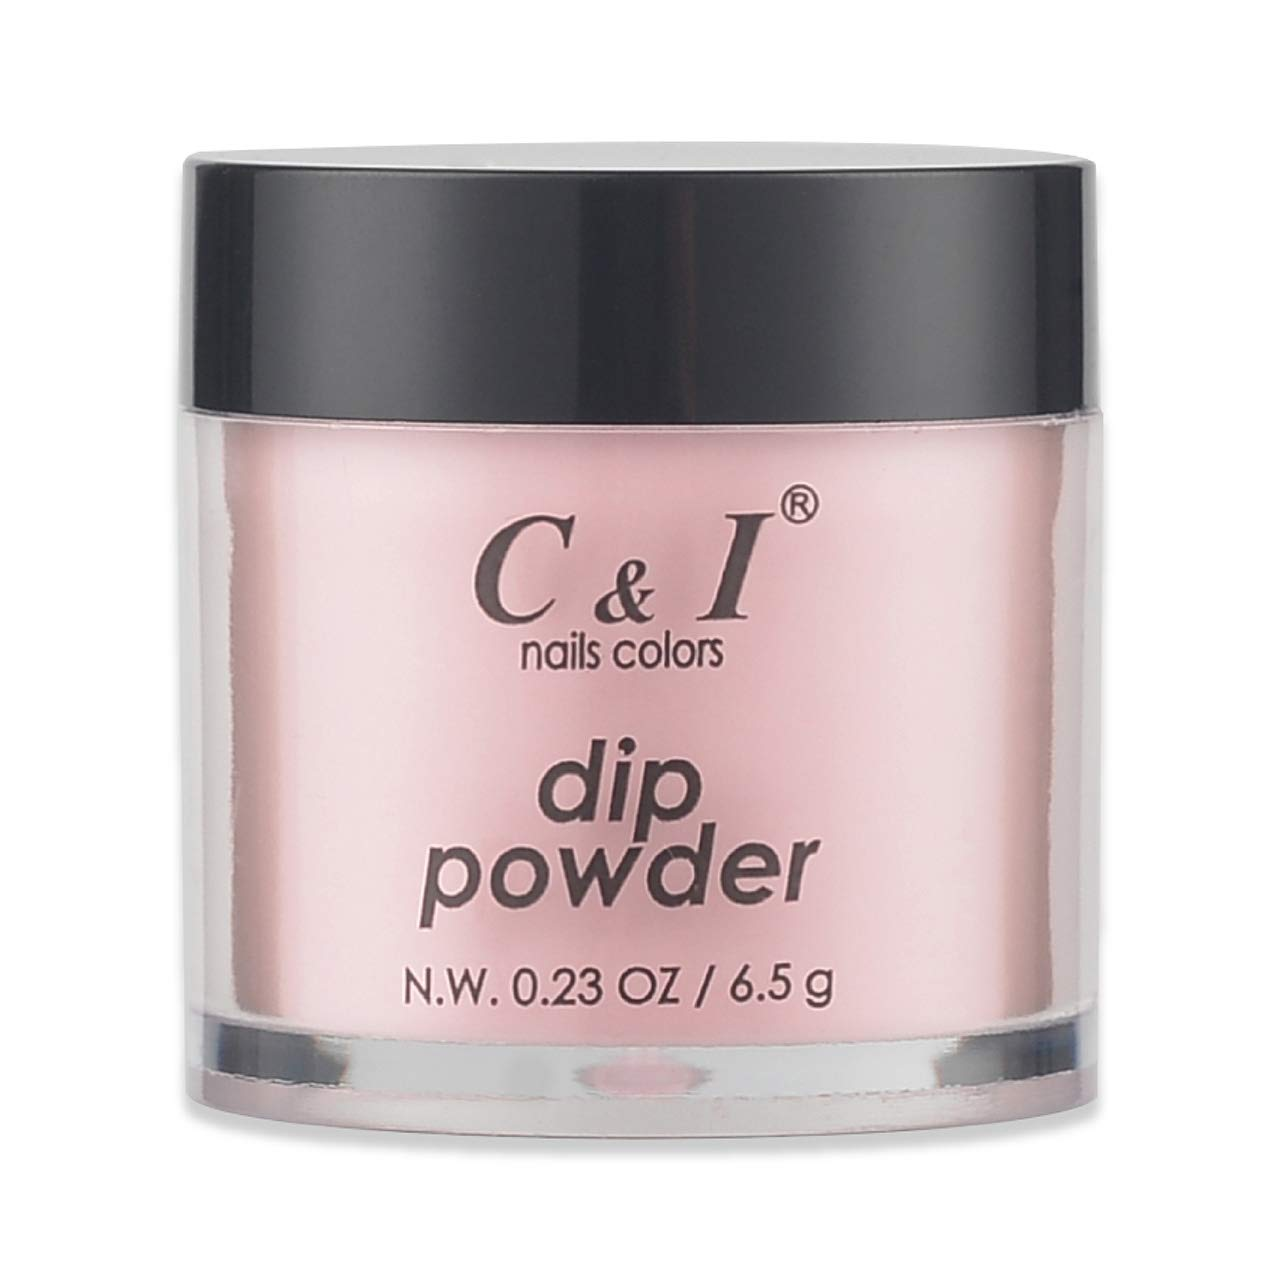 C & I Dipping Powder, Nail Colors, Gel Effect, Color # 8 Salmon, 0.23 oz, 6.5 g, naked color system (4 pcs)